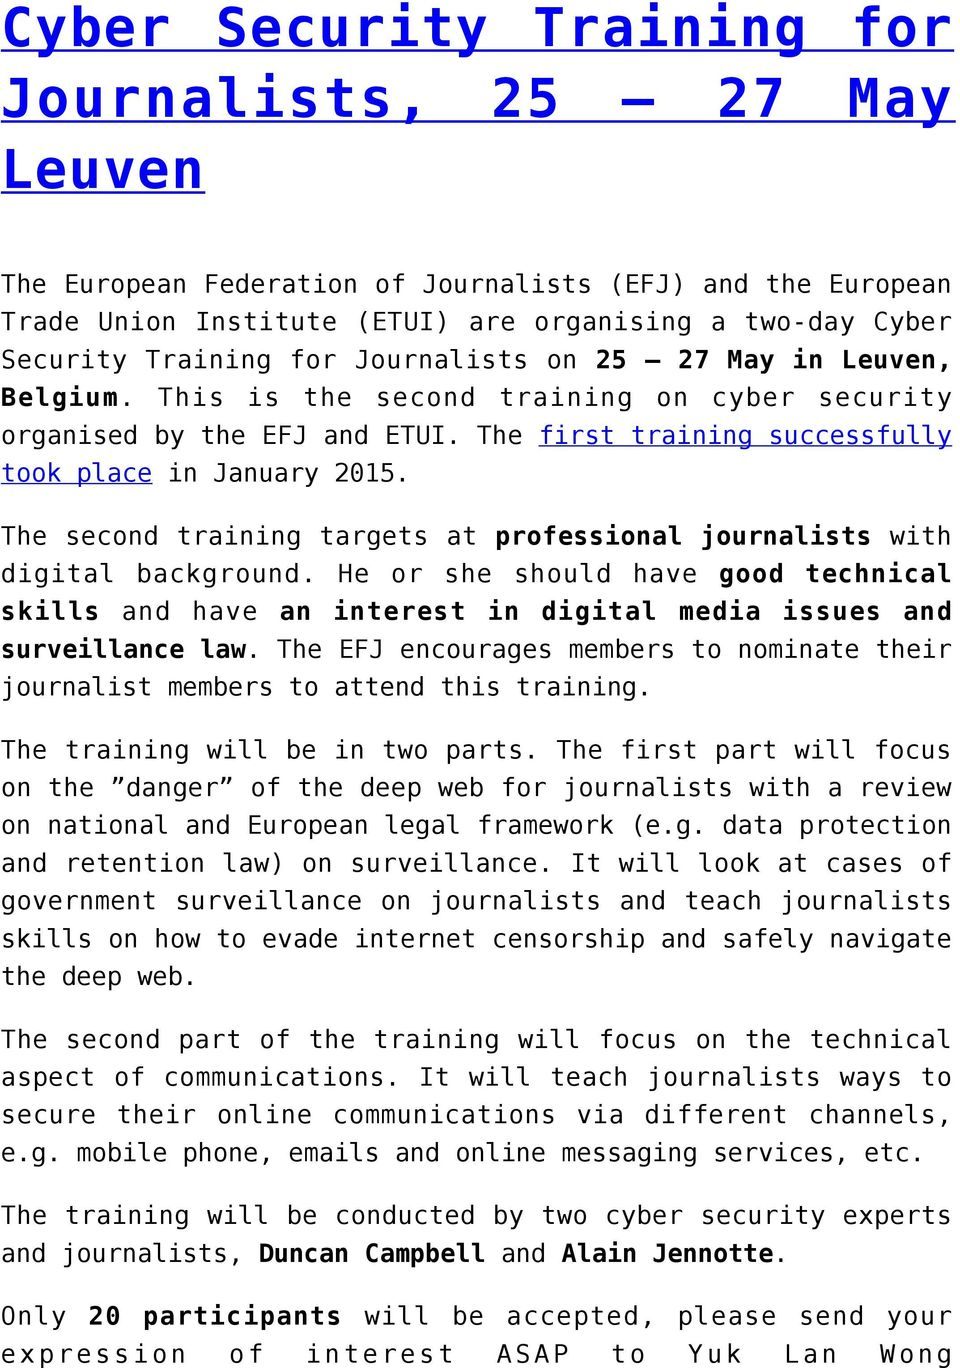 The second training targets at professional journalists with digital background. He or she should have good technical skills and have an interest in digital media issues and surveillance law.